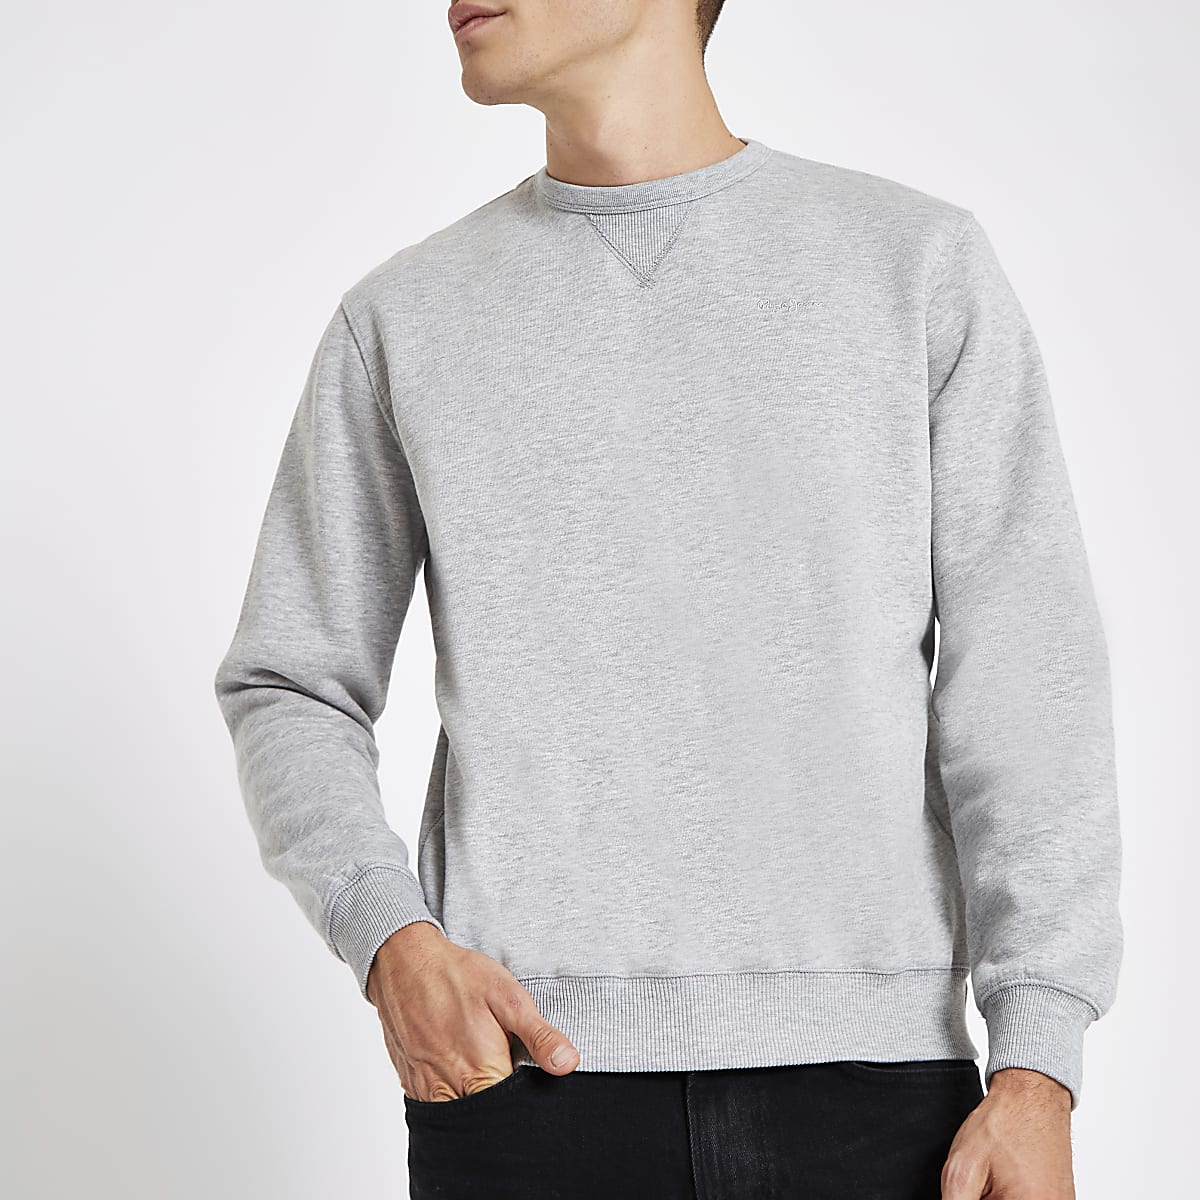 Pepe Jeans crew neck jumper